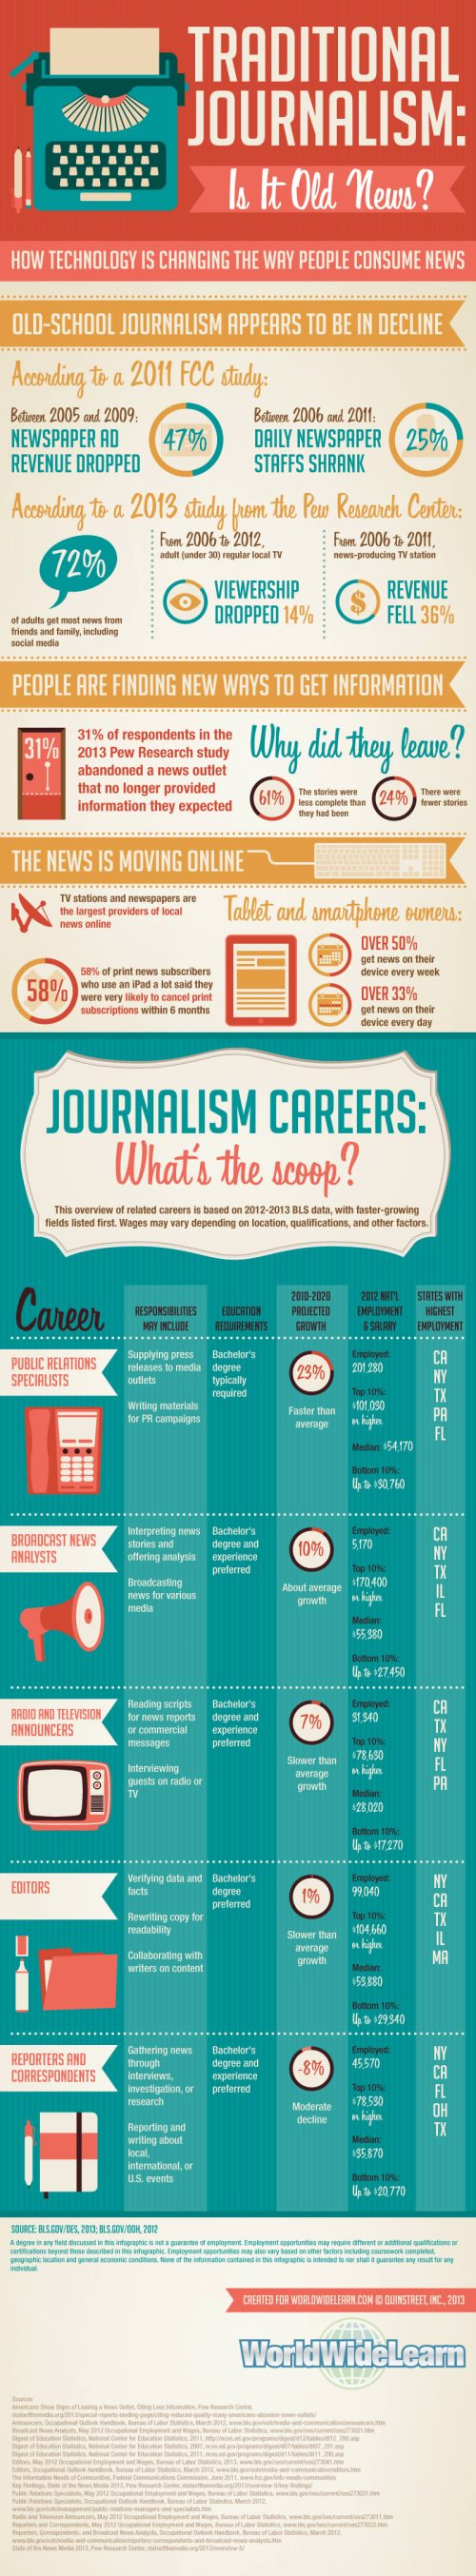 traditional-journalism-is-it-old-news_51b0bac594848